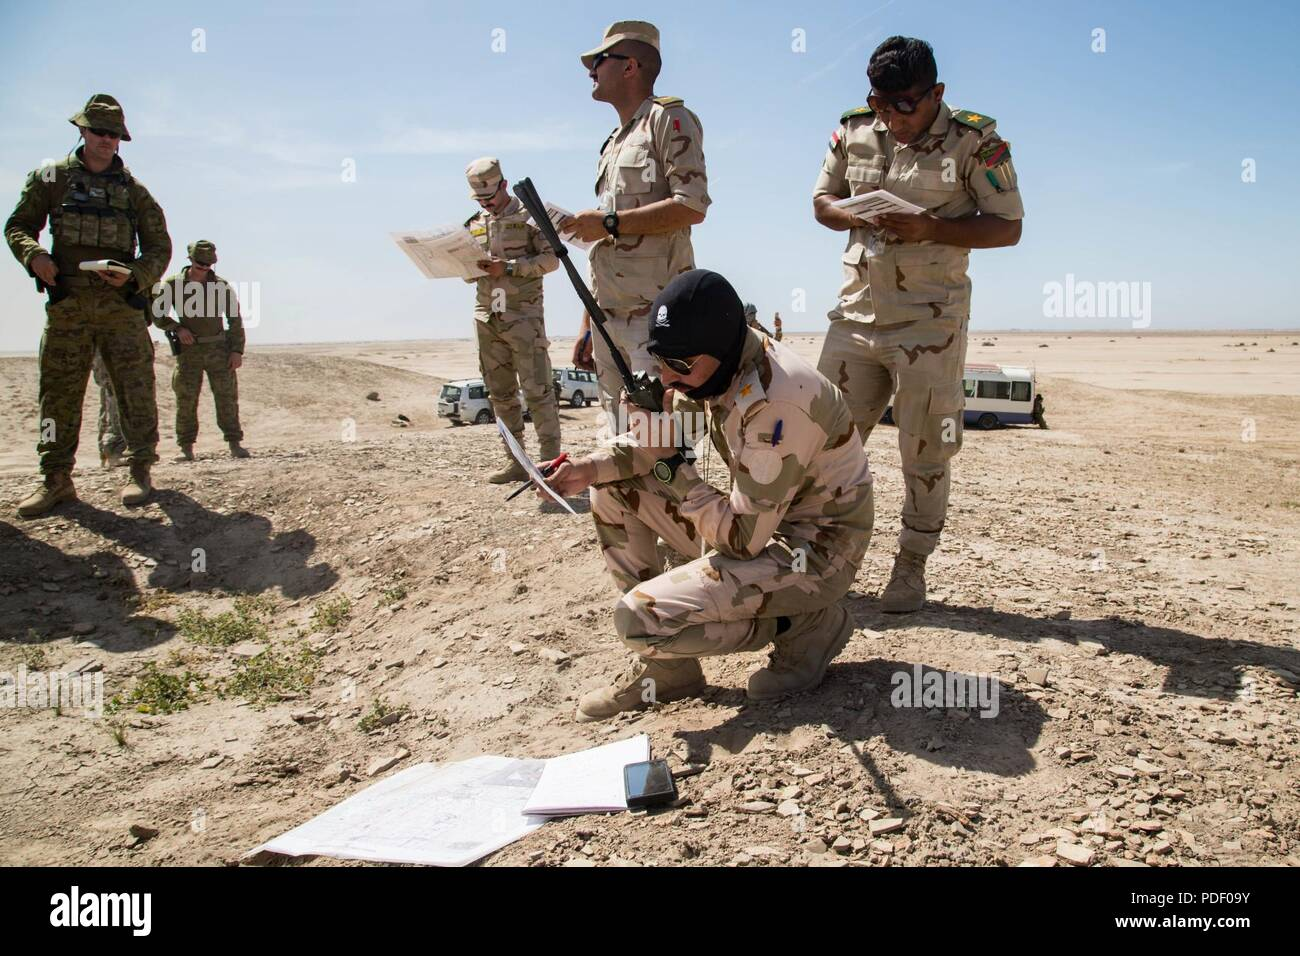 An Australian Army Instructor Observes Iraqi Soldiers As They Conduct A Situation Report During Training Scenario With The Forward Air Controller